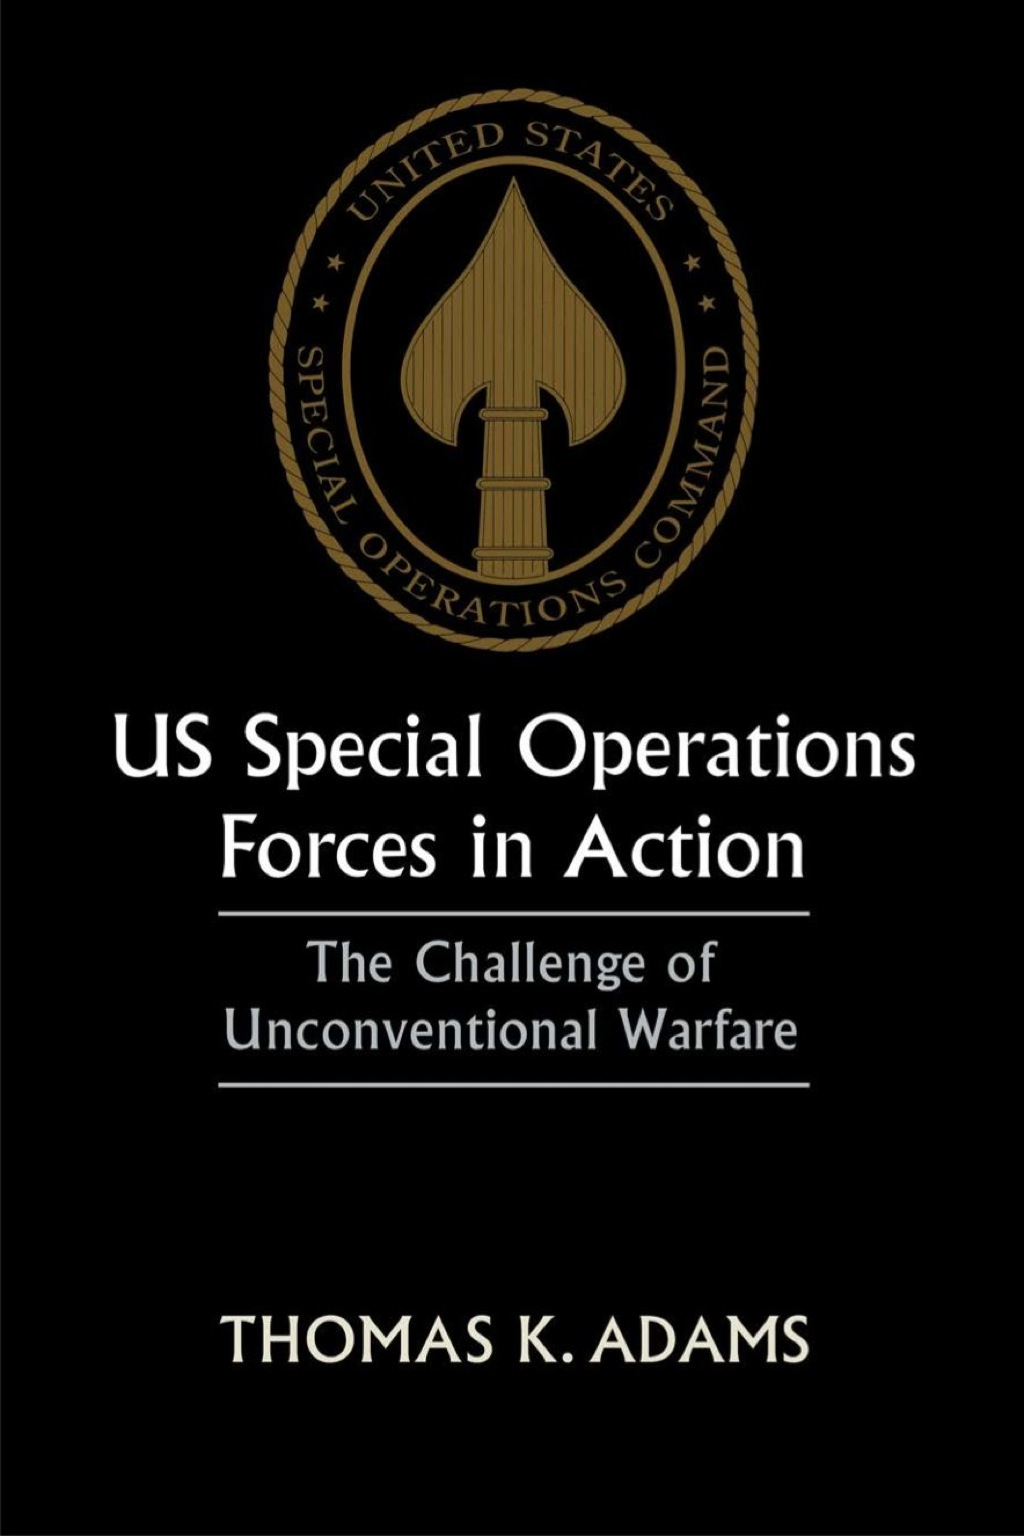 US Special Operations Forces in Action (eBook Rental)